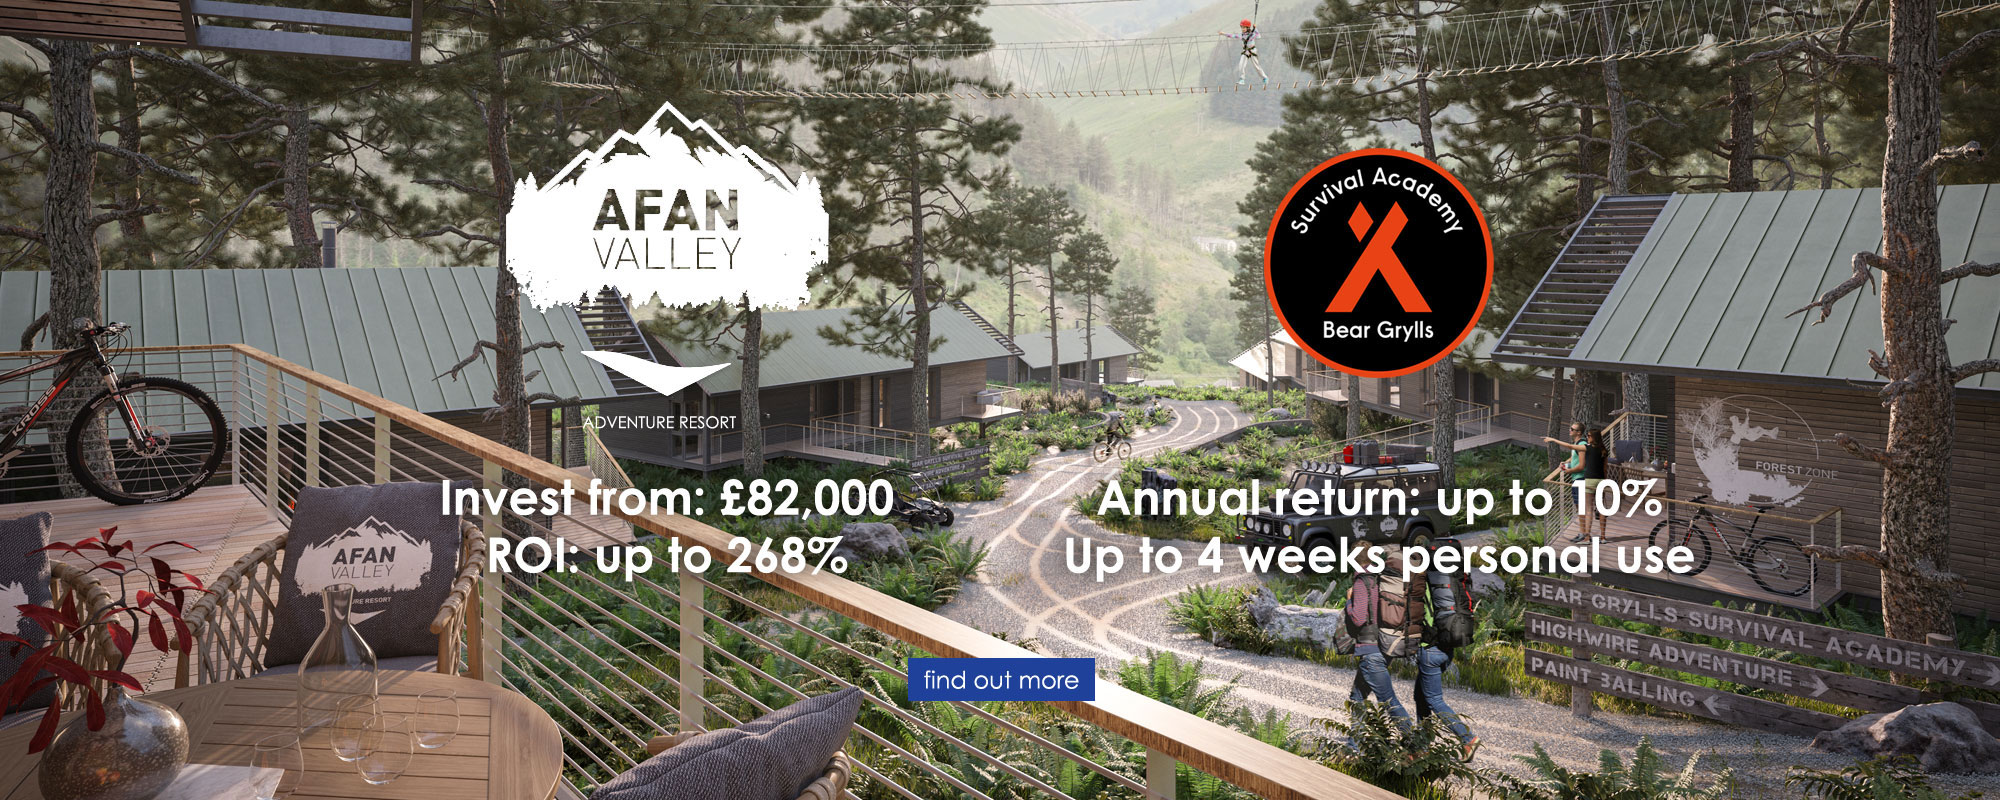 Afan Valley Adventure Resort with Bear Grylls Survival Academy - Invest from £82,000, Annual return up to 10%, ROI up to 268%, Up to 4 weeks personal use - Find out more